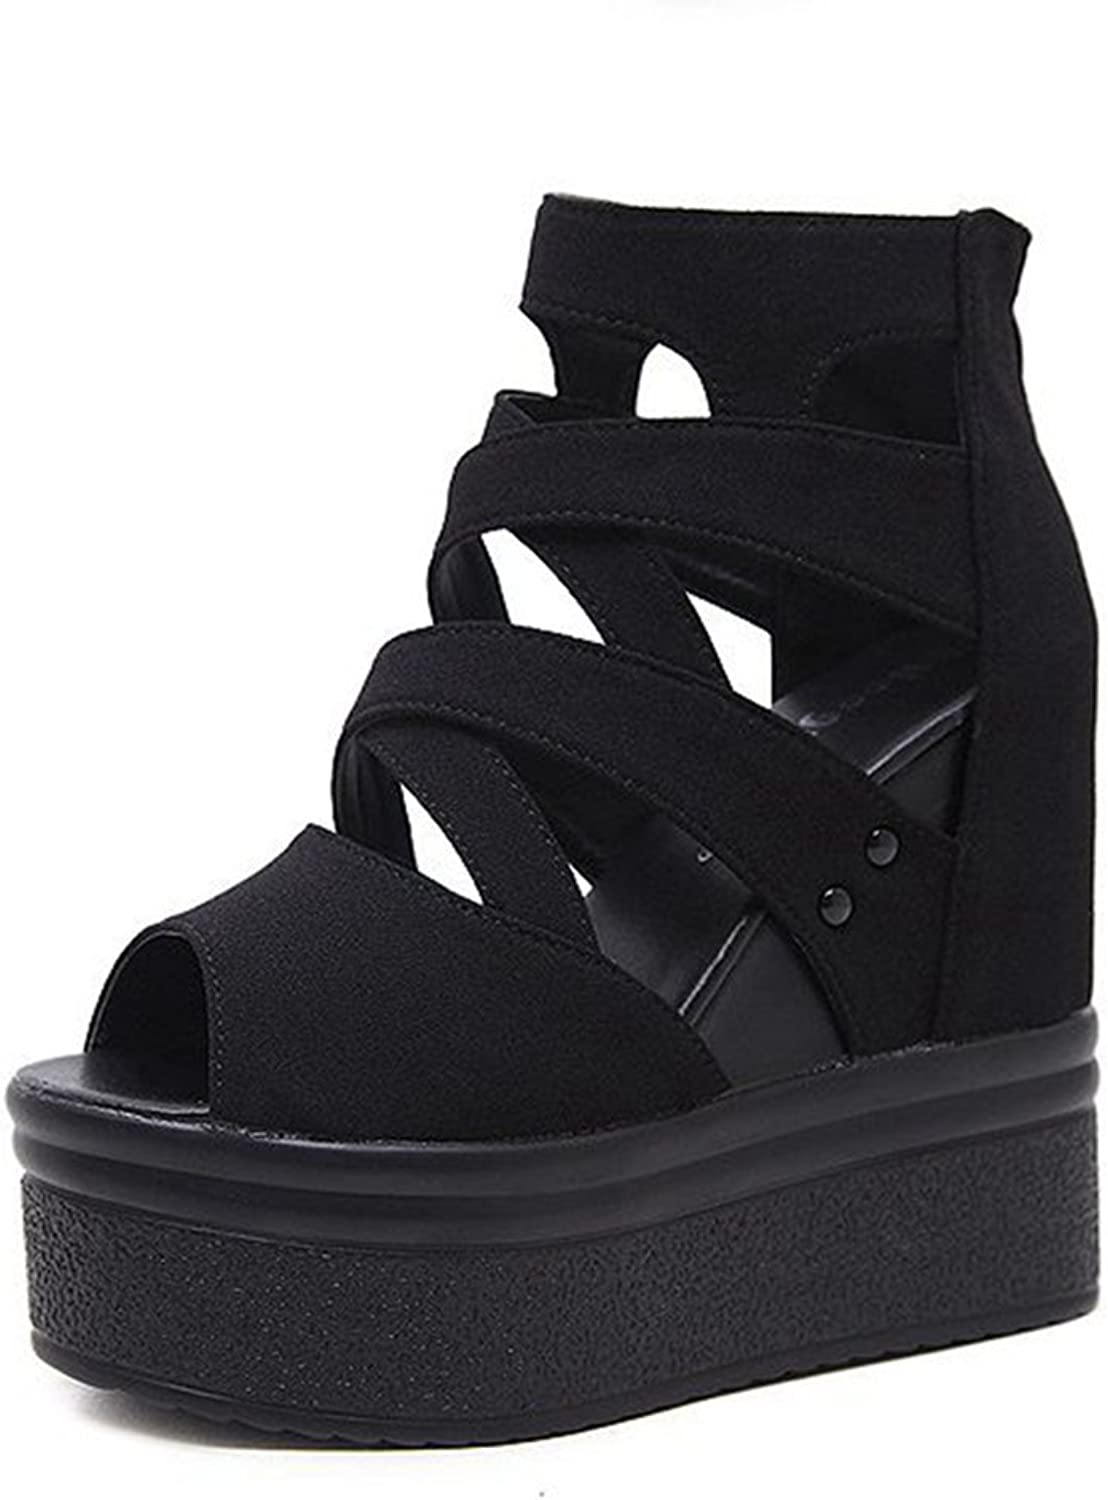 GIY Women's Strappy Platform Wedges Sandals Gladiator Peep Toe Chunky Hidden Heel Zipper Booties Black